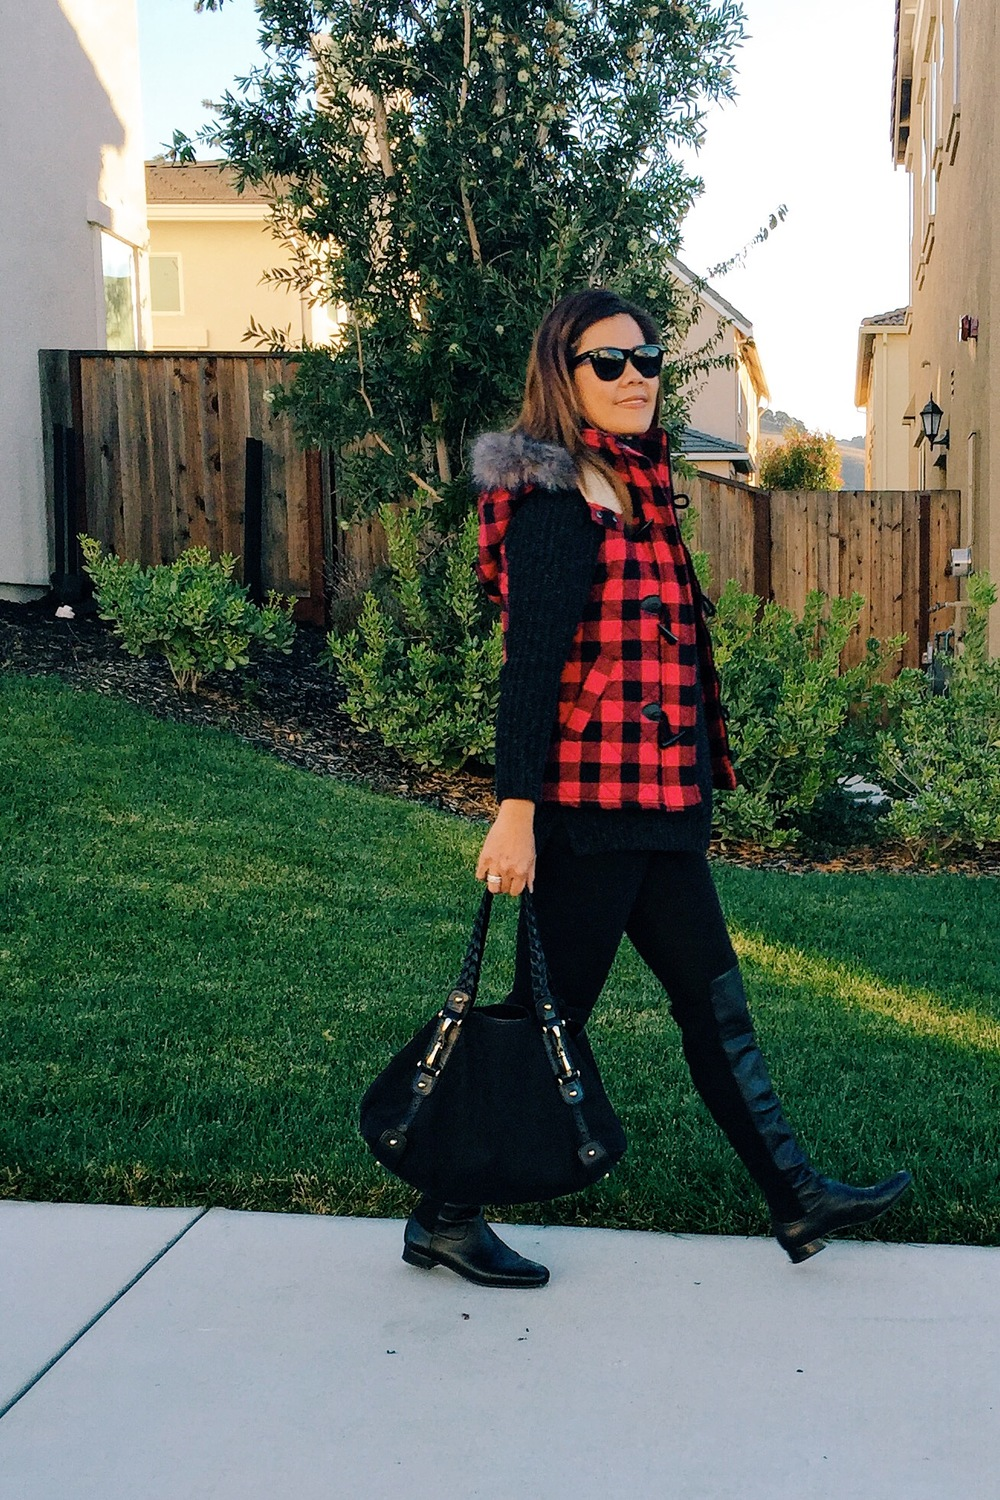 Plaid vest from Target and knee high boots from Nordstrom (last fall).